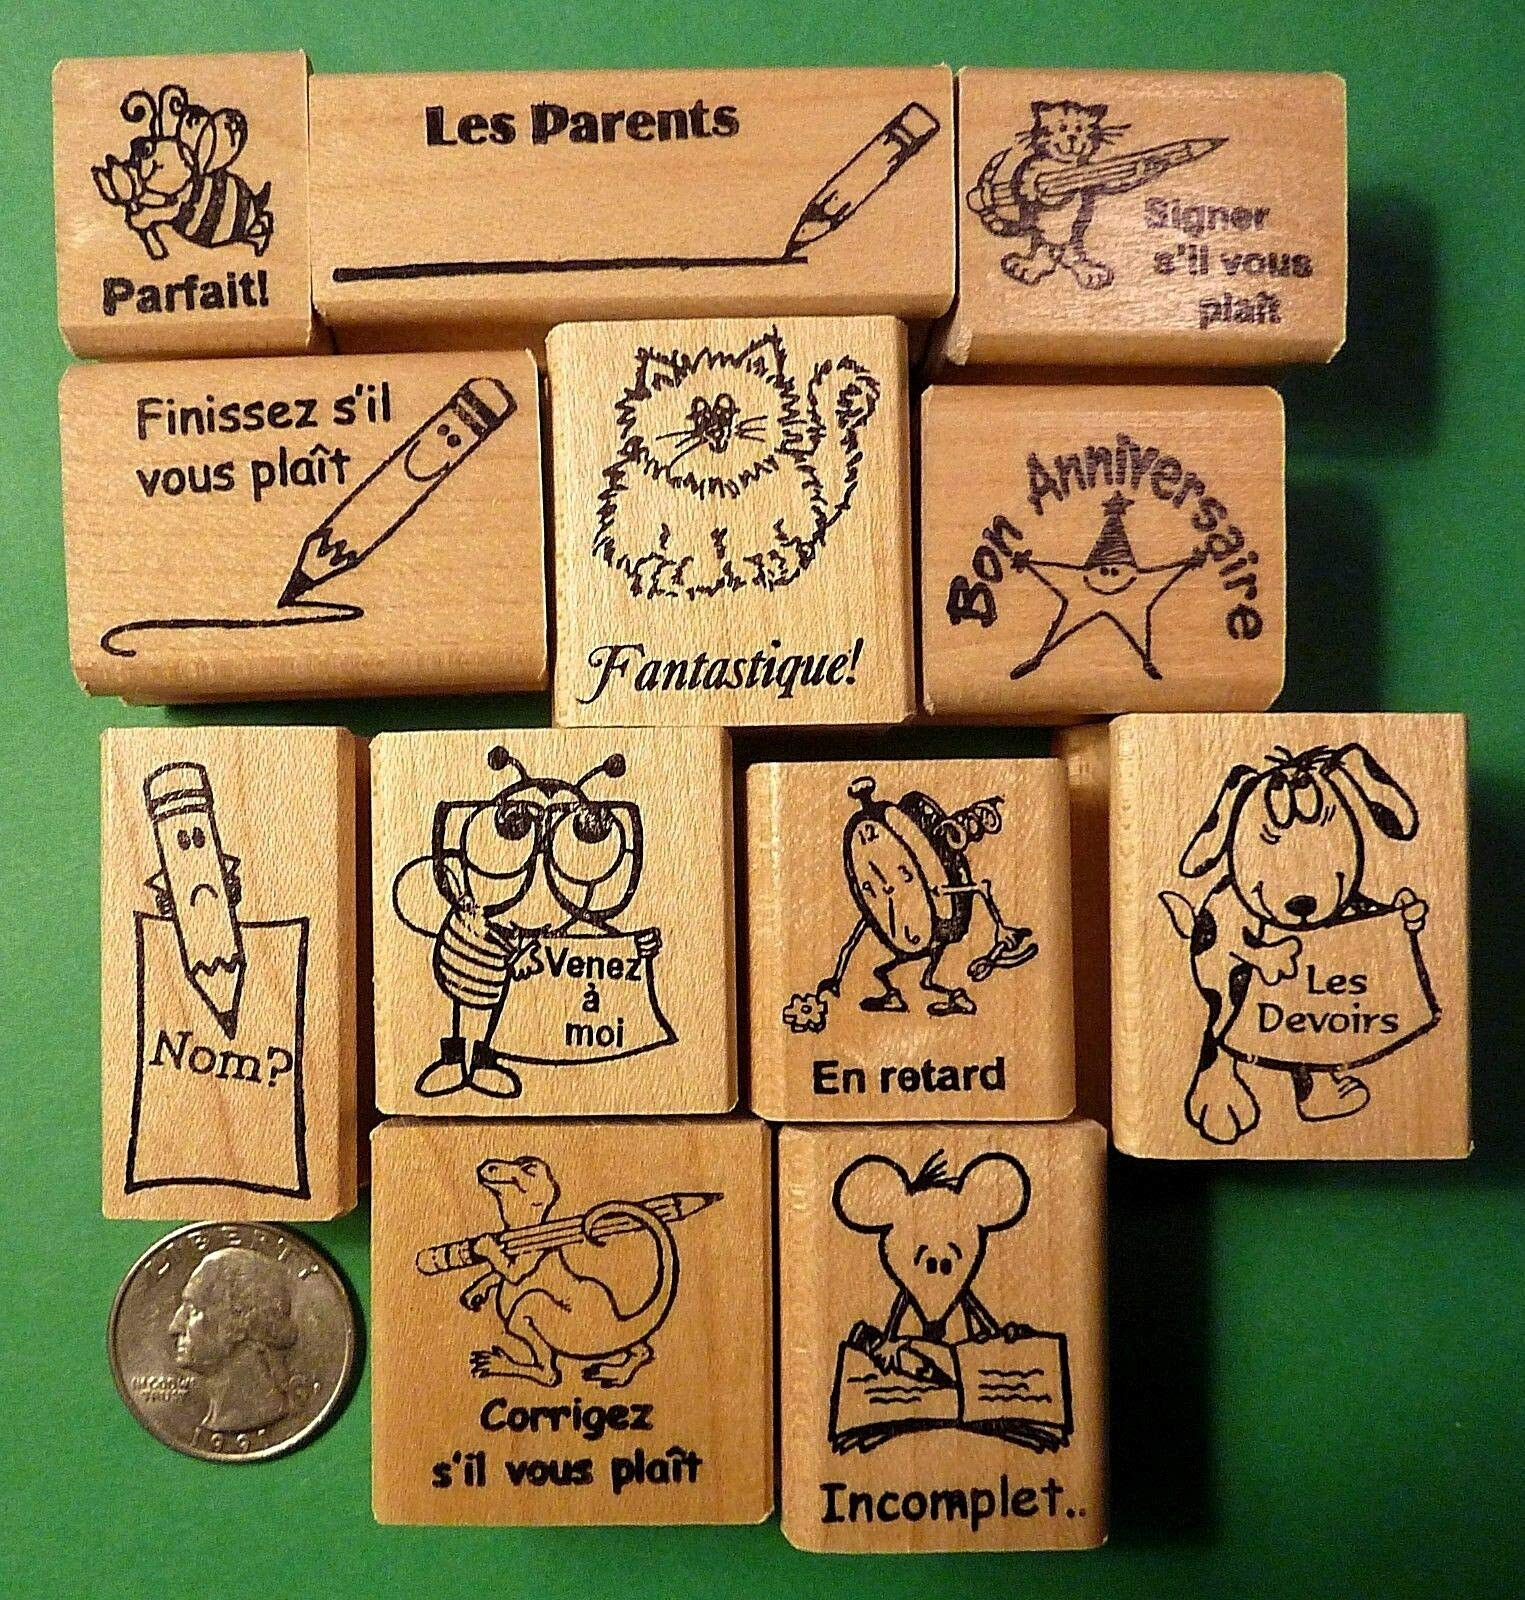 Teacher's French Only 12-Piece Rubber Stamp Asst, Wood Mounted - Rubber Stamp Wood Carving Blocks by Wooden Stamps